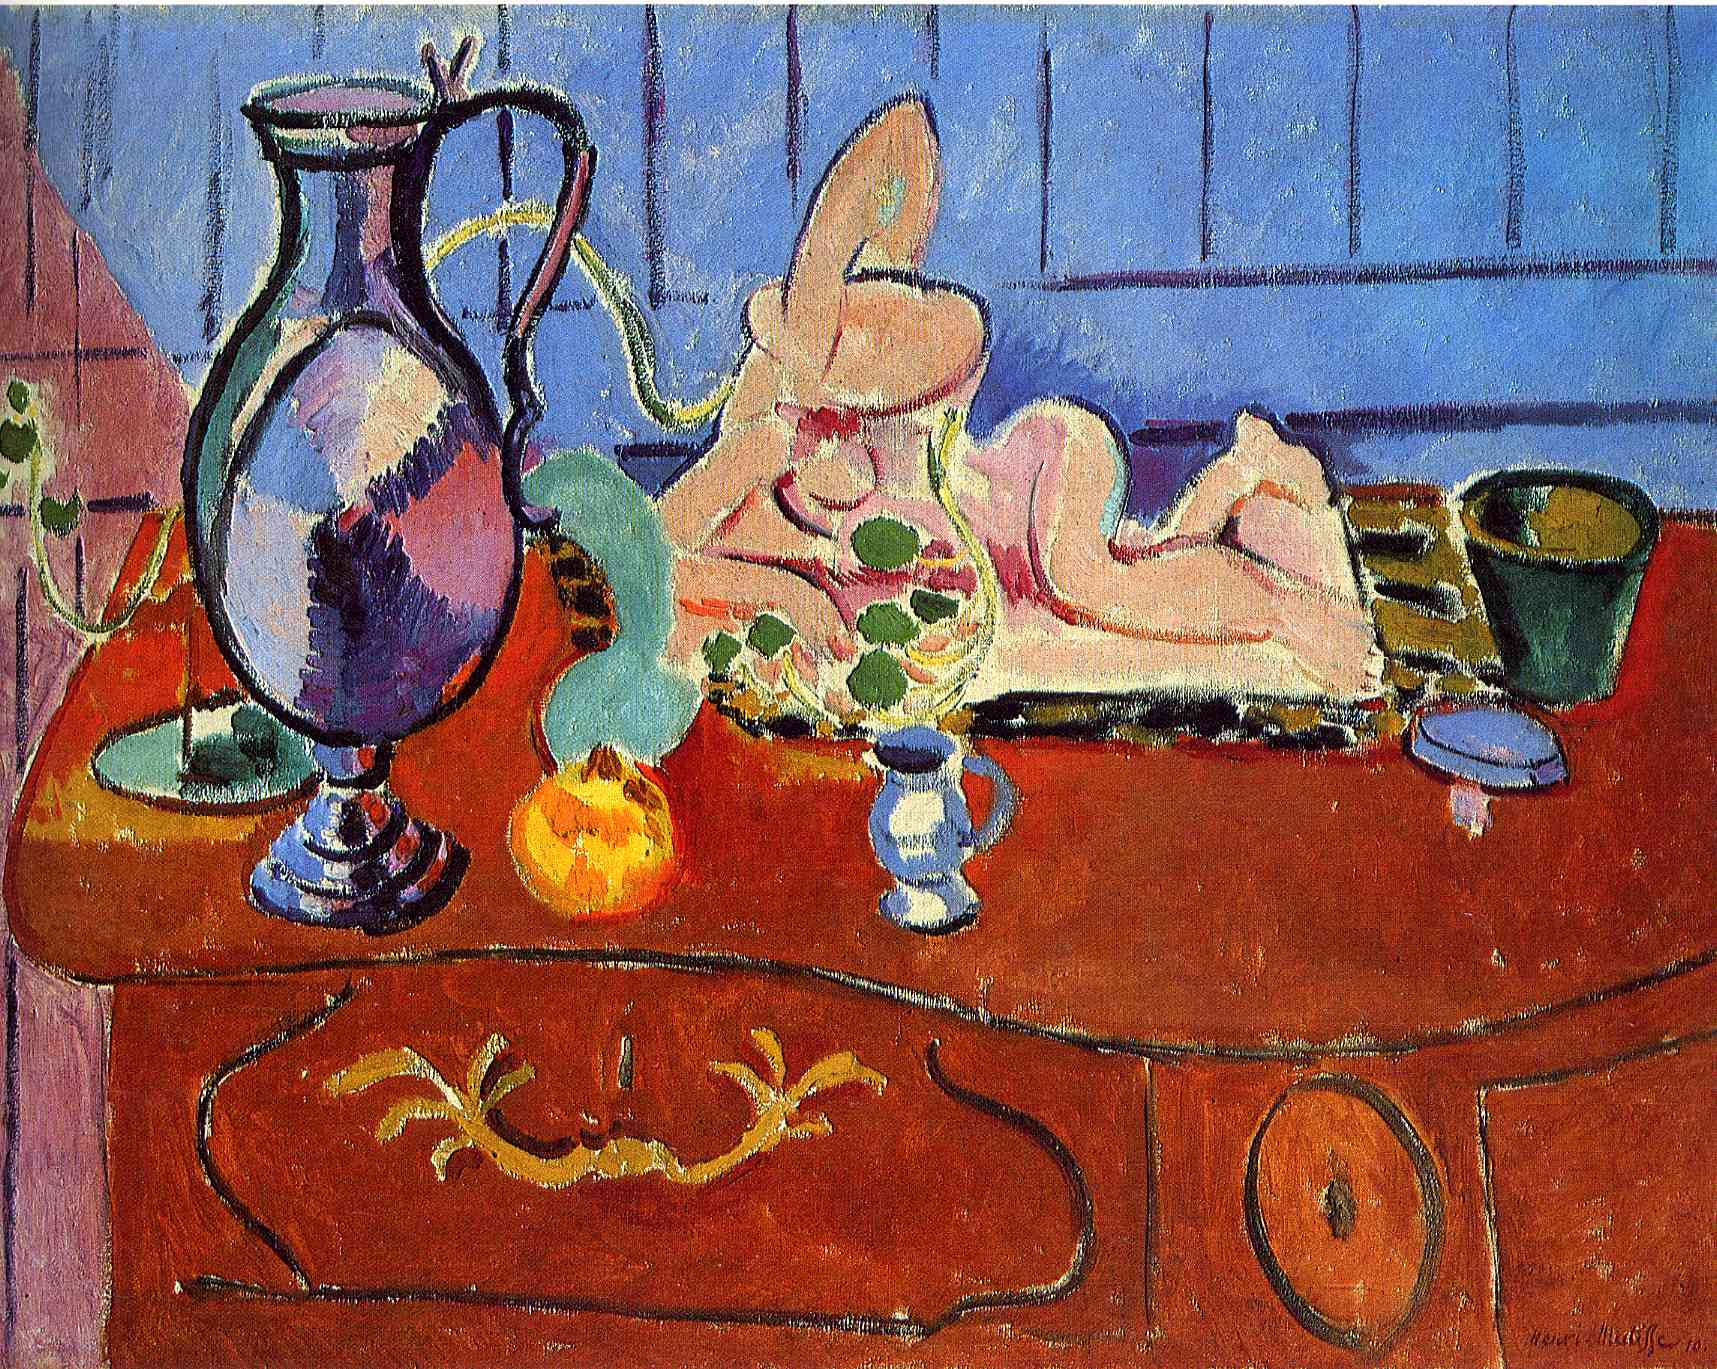 Henri Matisse - Still Life with a Pewter Jug and Pink Statuette 1910